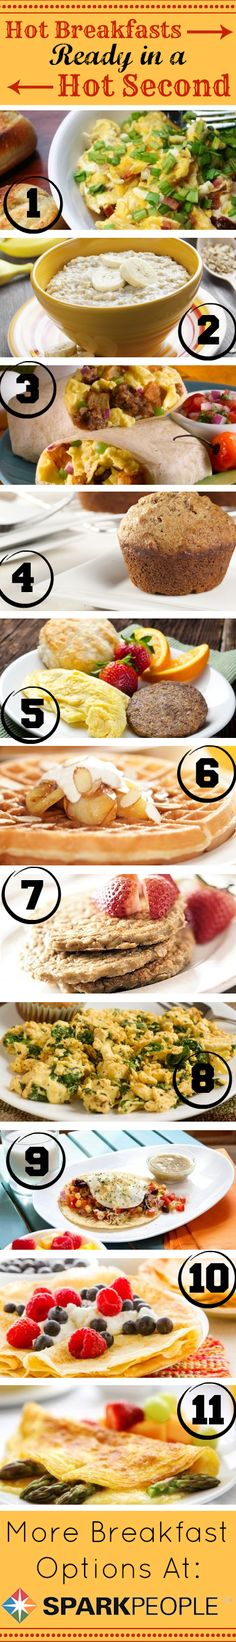 No time for breakfast? Not anymore! These hot breakfasts are ready in a flash! Check out these healthy recipe options for your next breakfast or any meal.